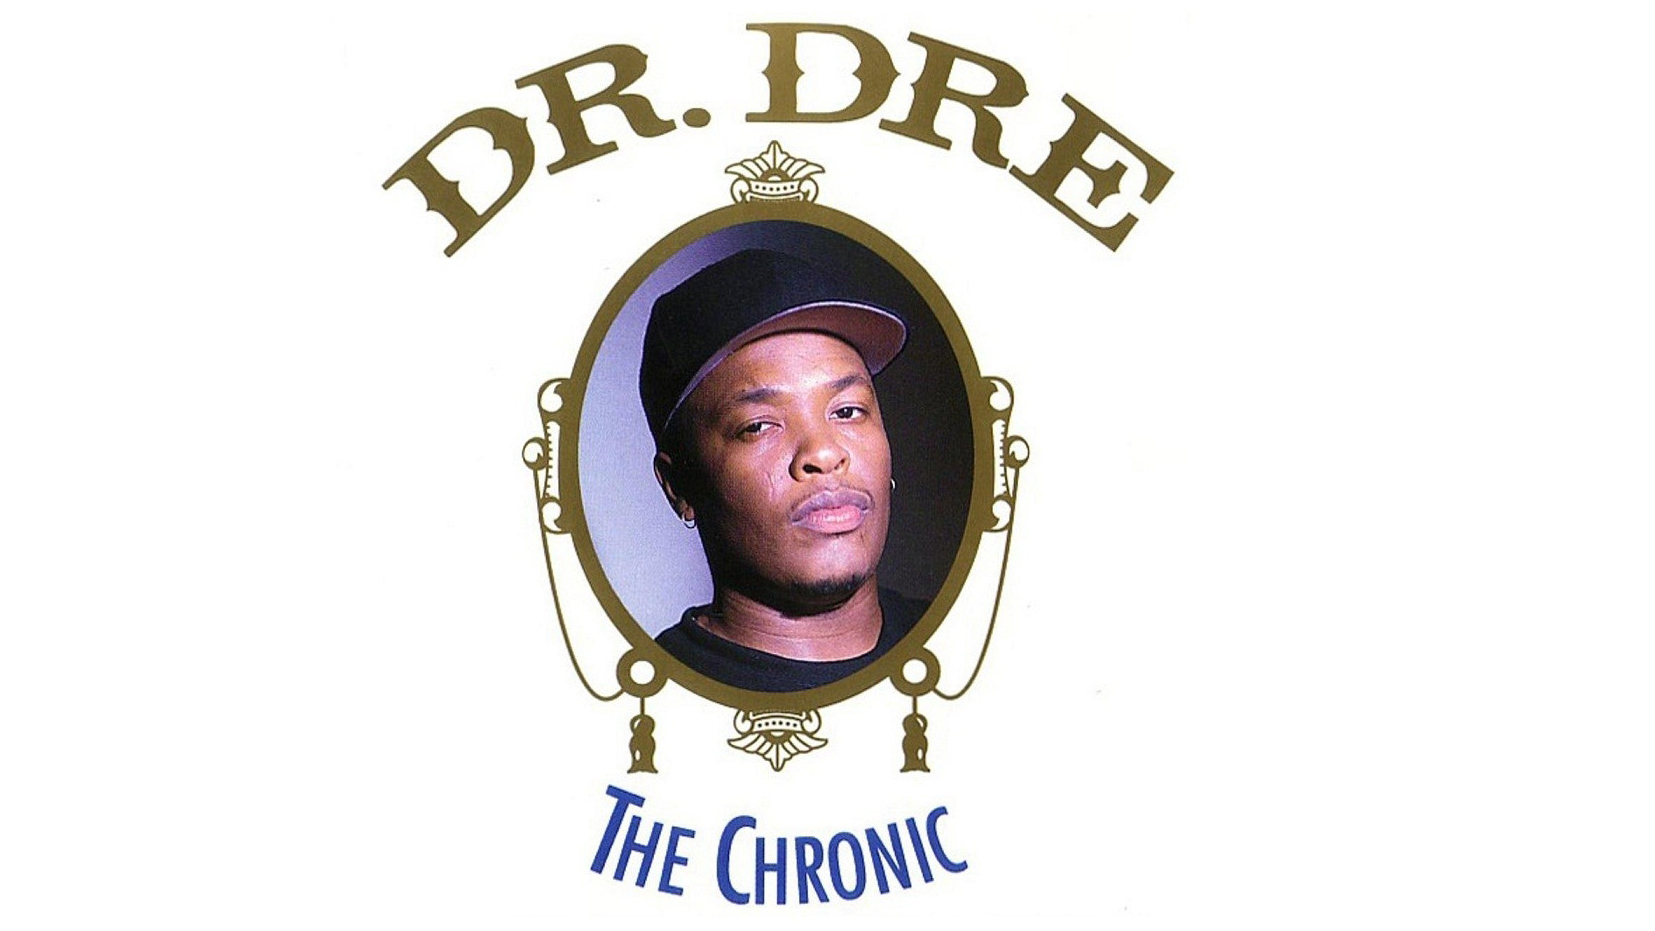 Putting it bluntly: Compton, cannabis and 'The Chronic' — 25 years later